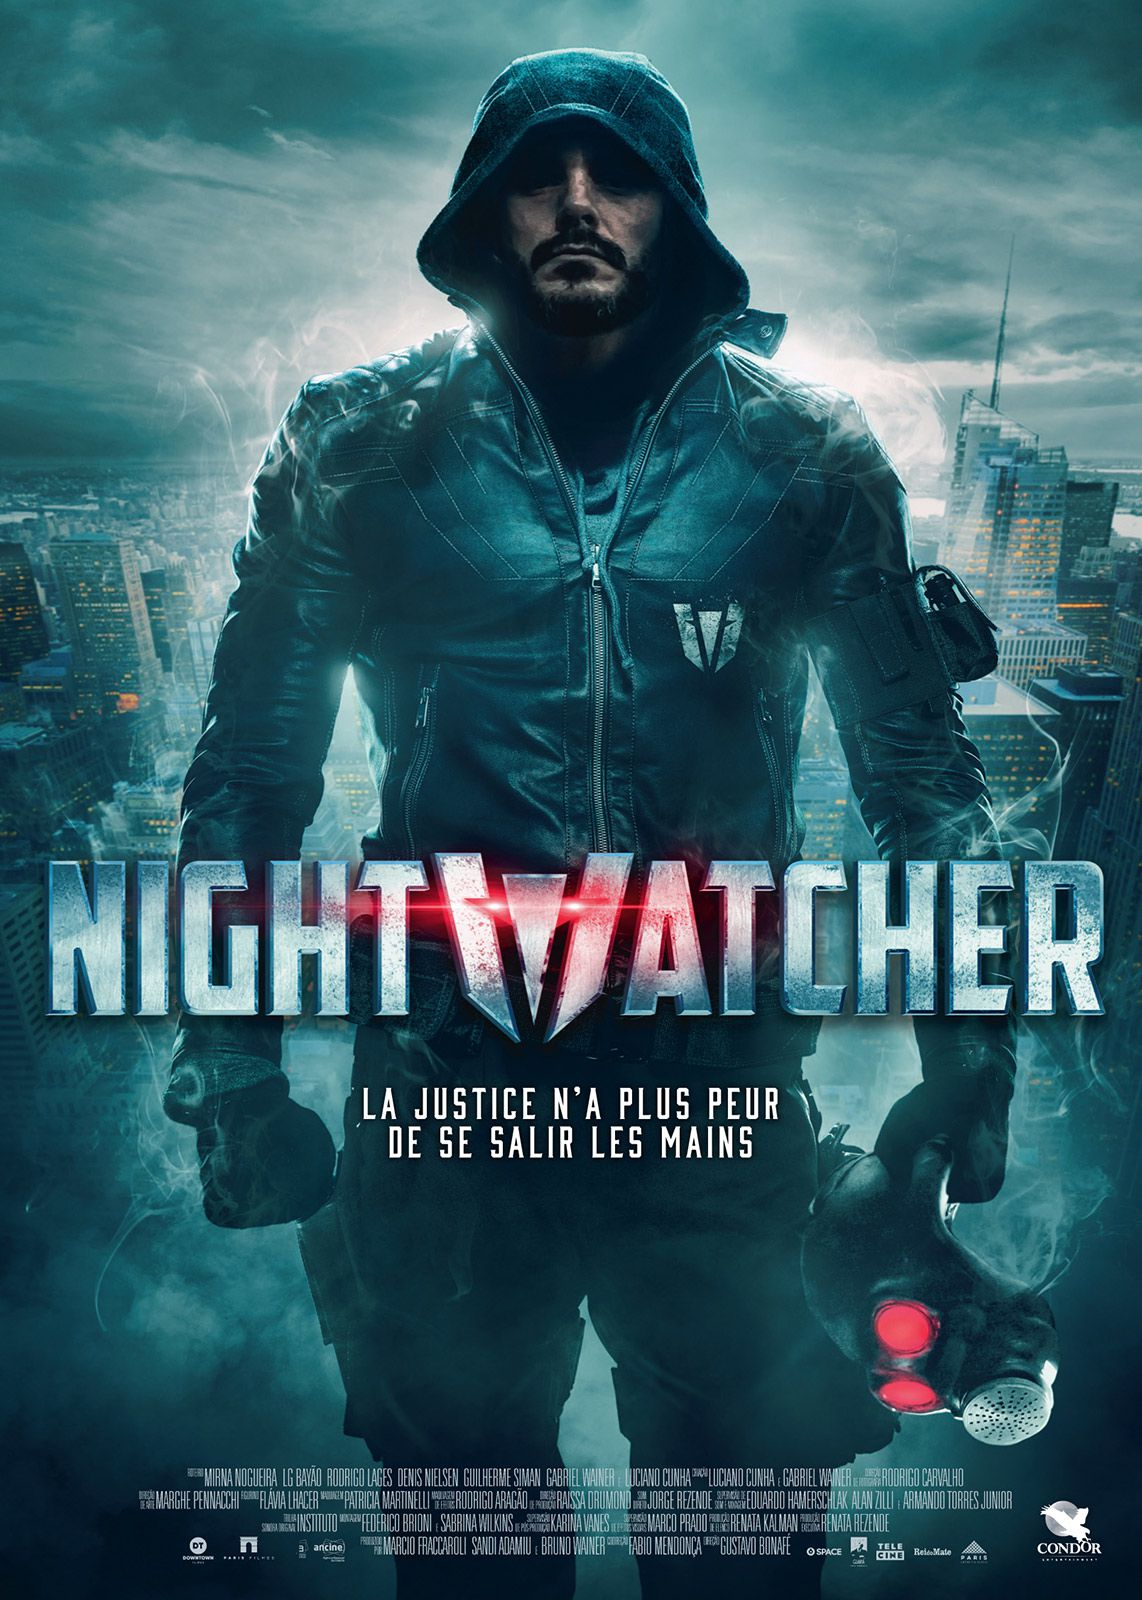 Voir Film Nightwatcher - Film (2018) streaming VF gratuit complet